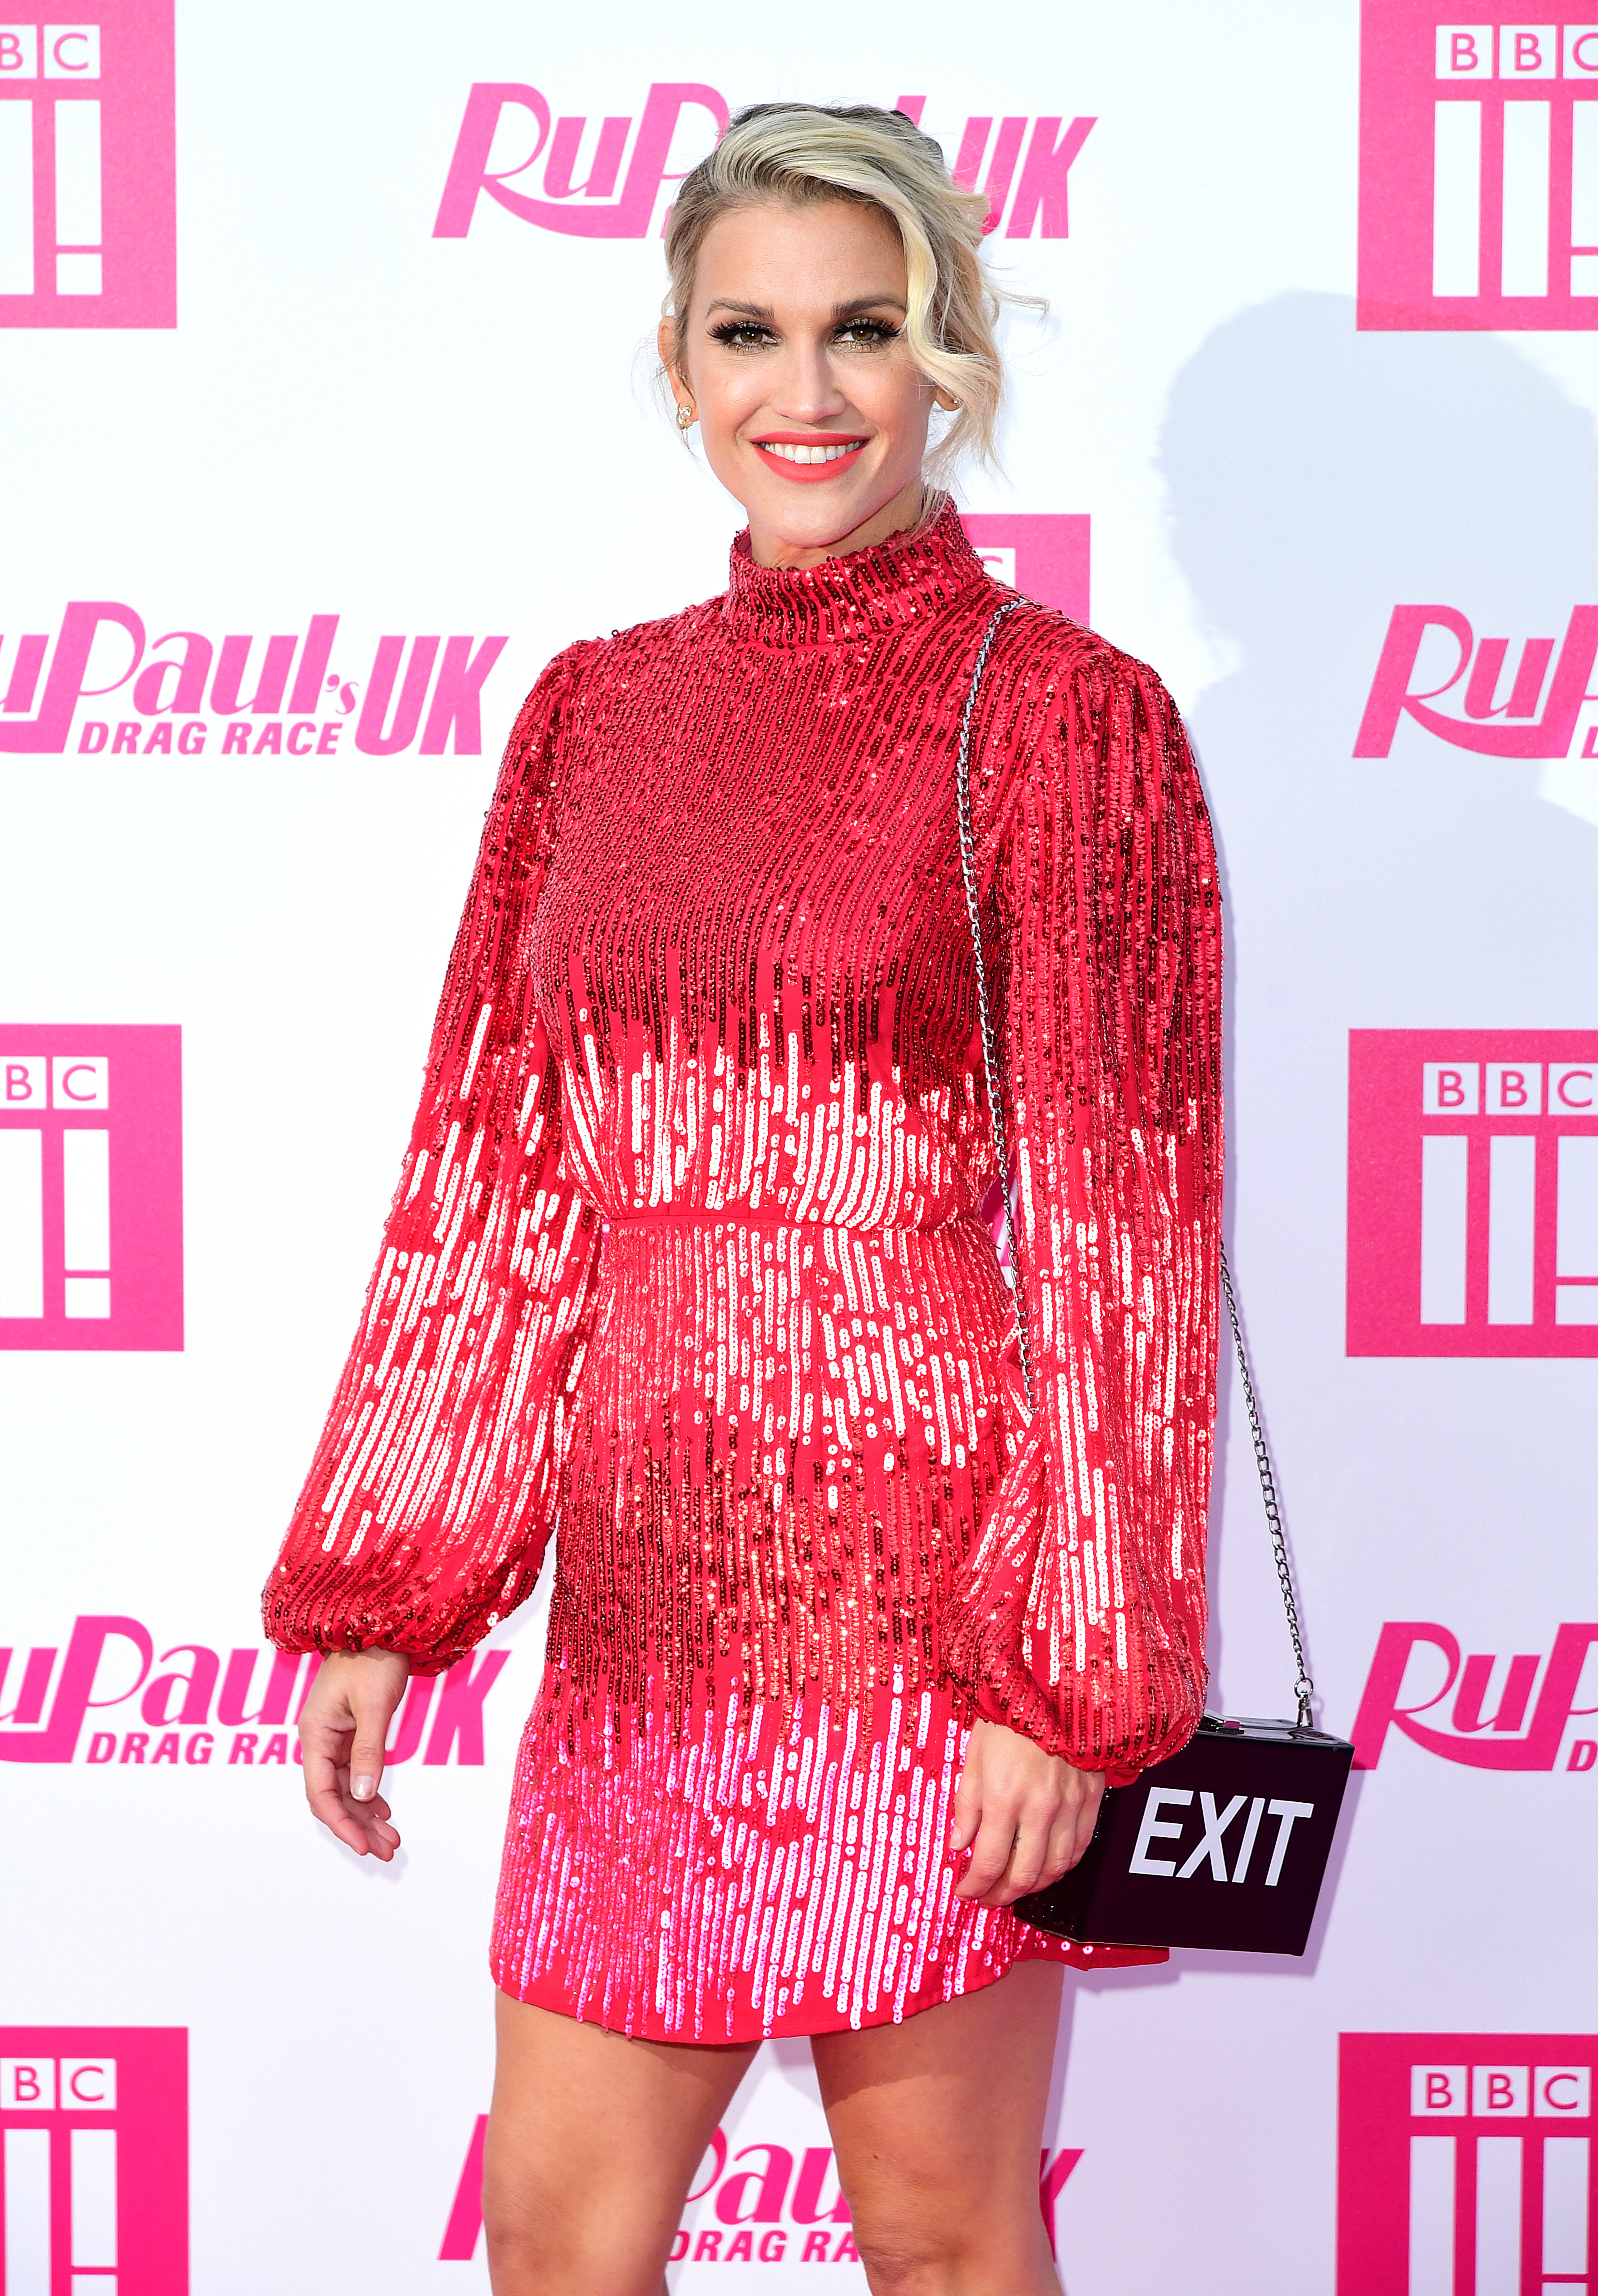 Ashley Roberts attending the RuPaul Drag race premiere 2019